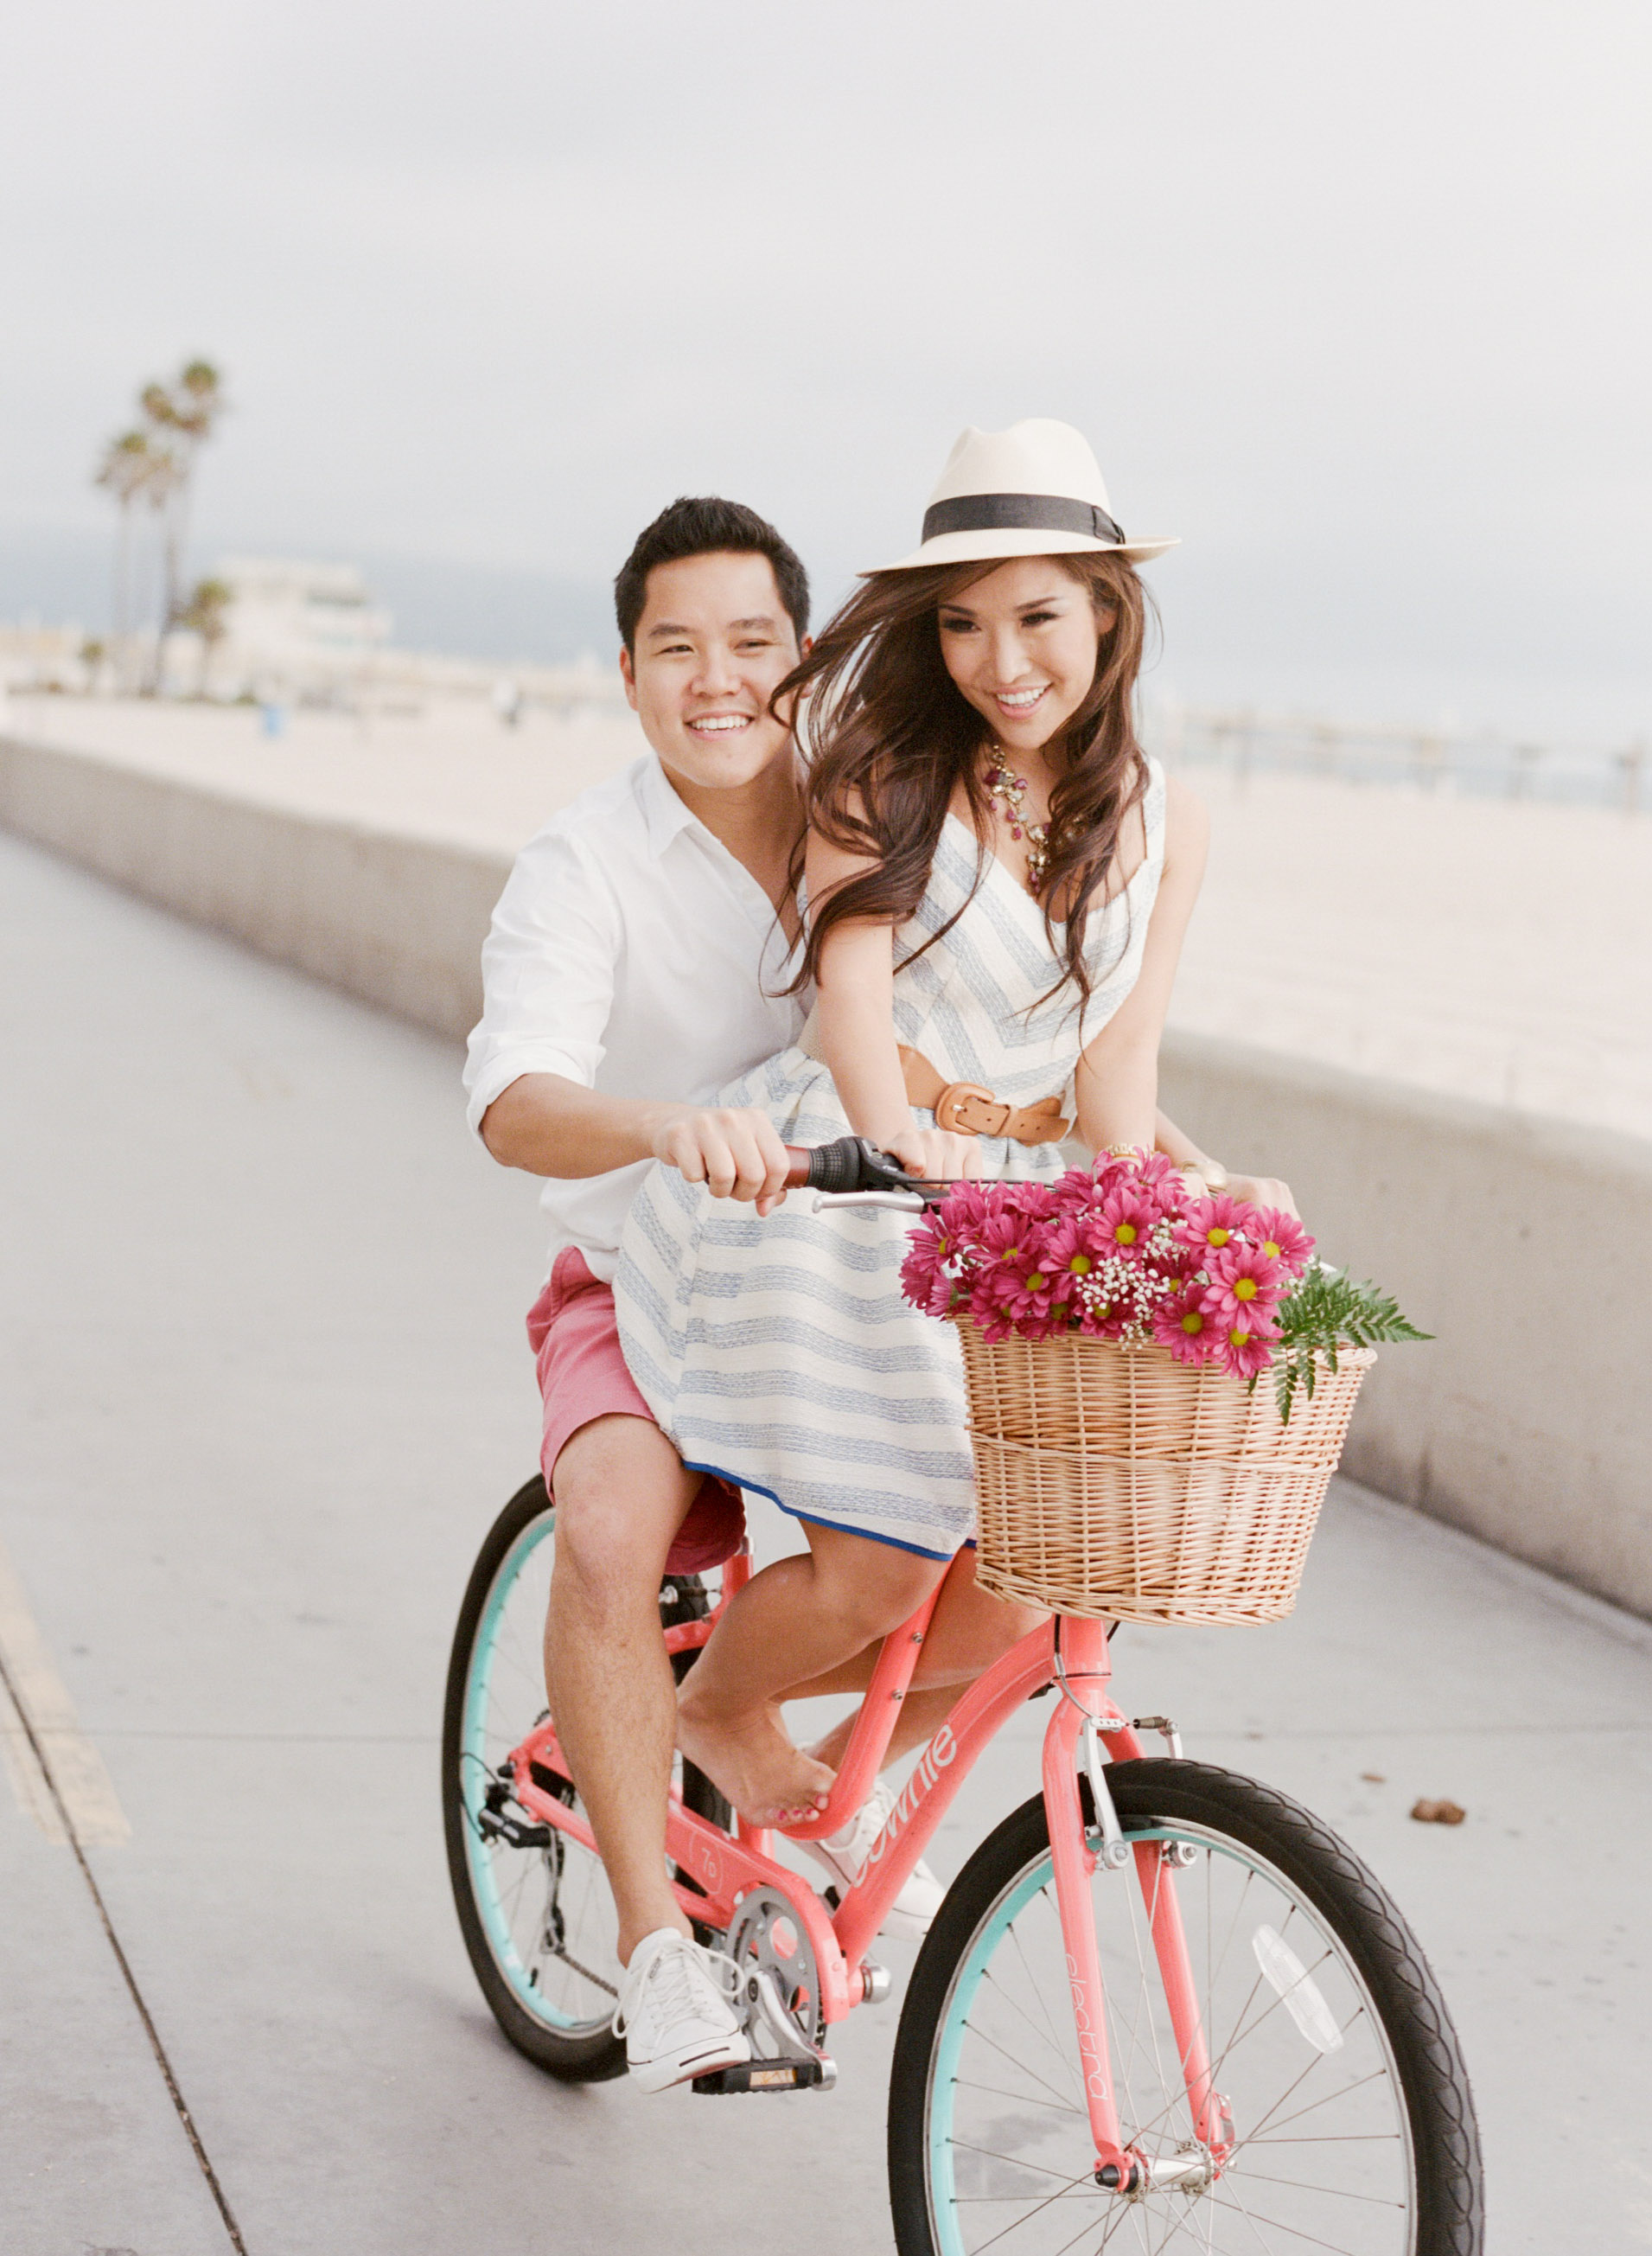 Couple on their pink bicycle with basket of flowers in Hermosa Beach, California during their engagement session with Sylvie Gil.